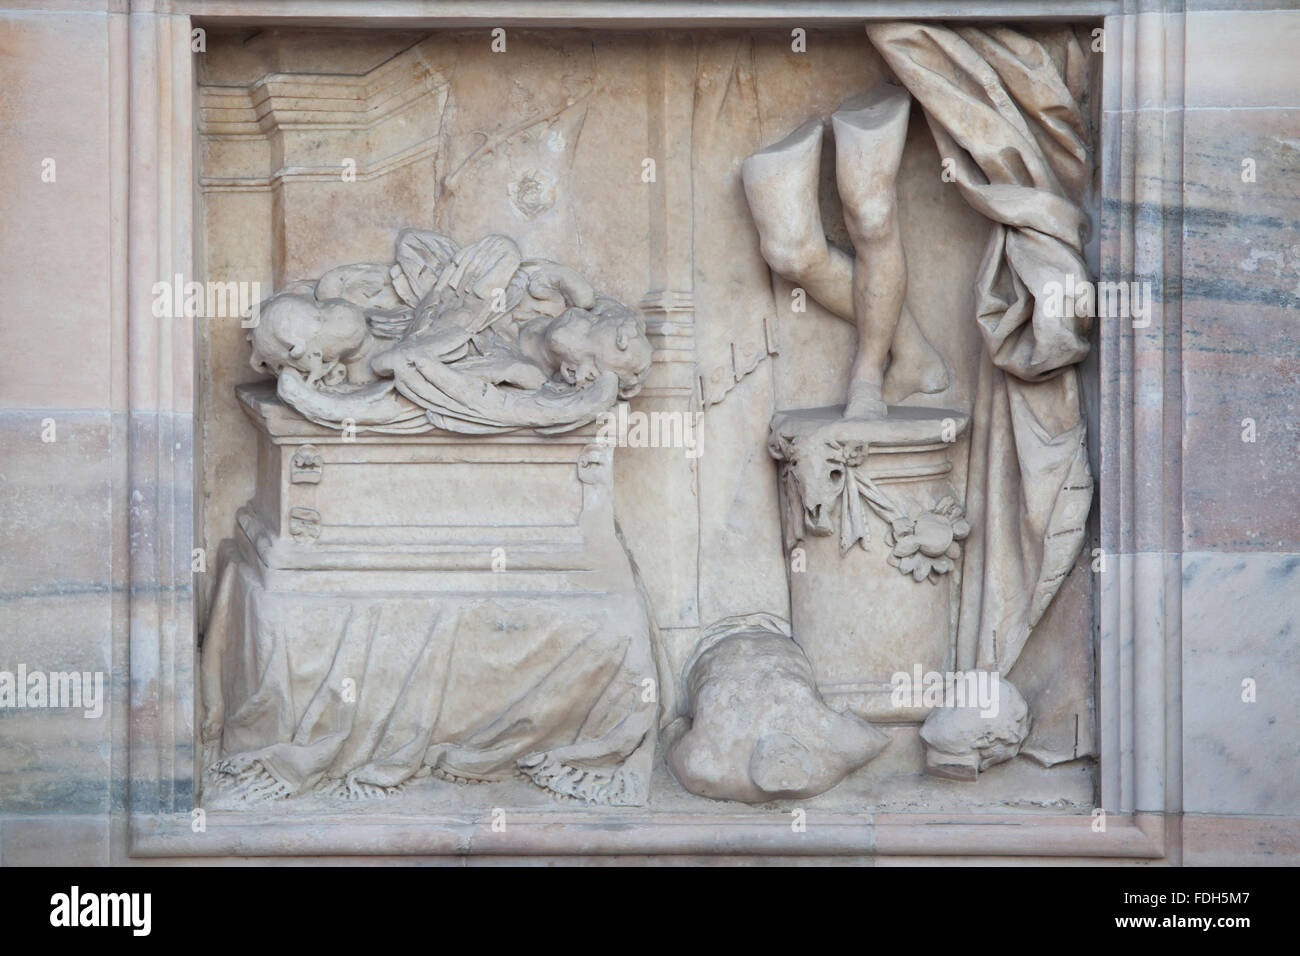 Allegorical scene depicted in the marble relief on the main facade of the Milan Cathedral (Duomo di Milano) in Milan, - Stock Image